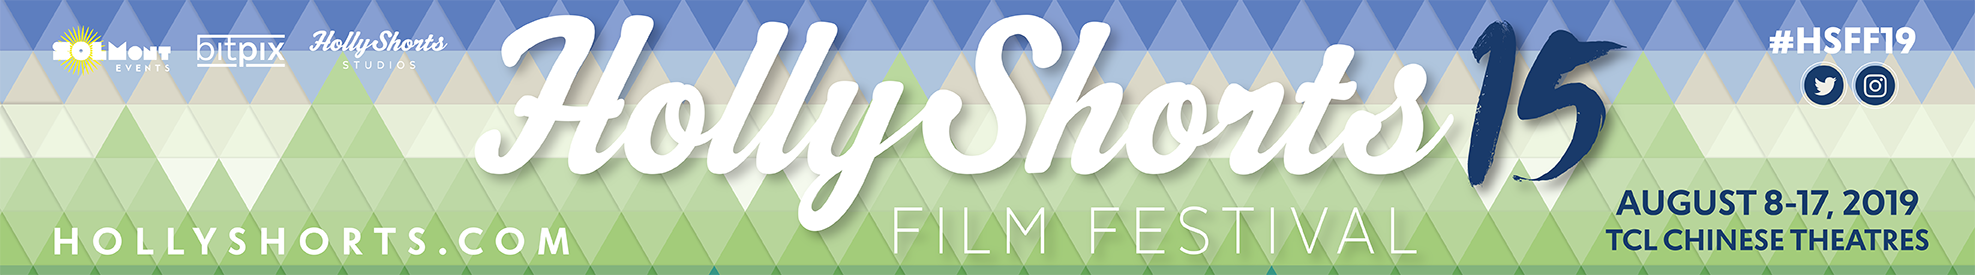 HSFF_BANNER_1975.png